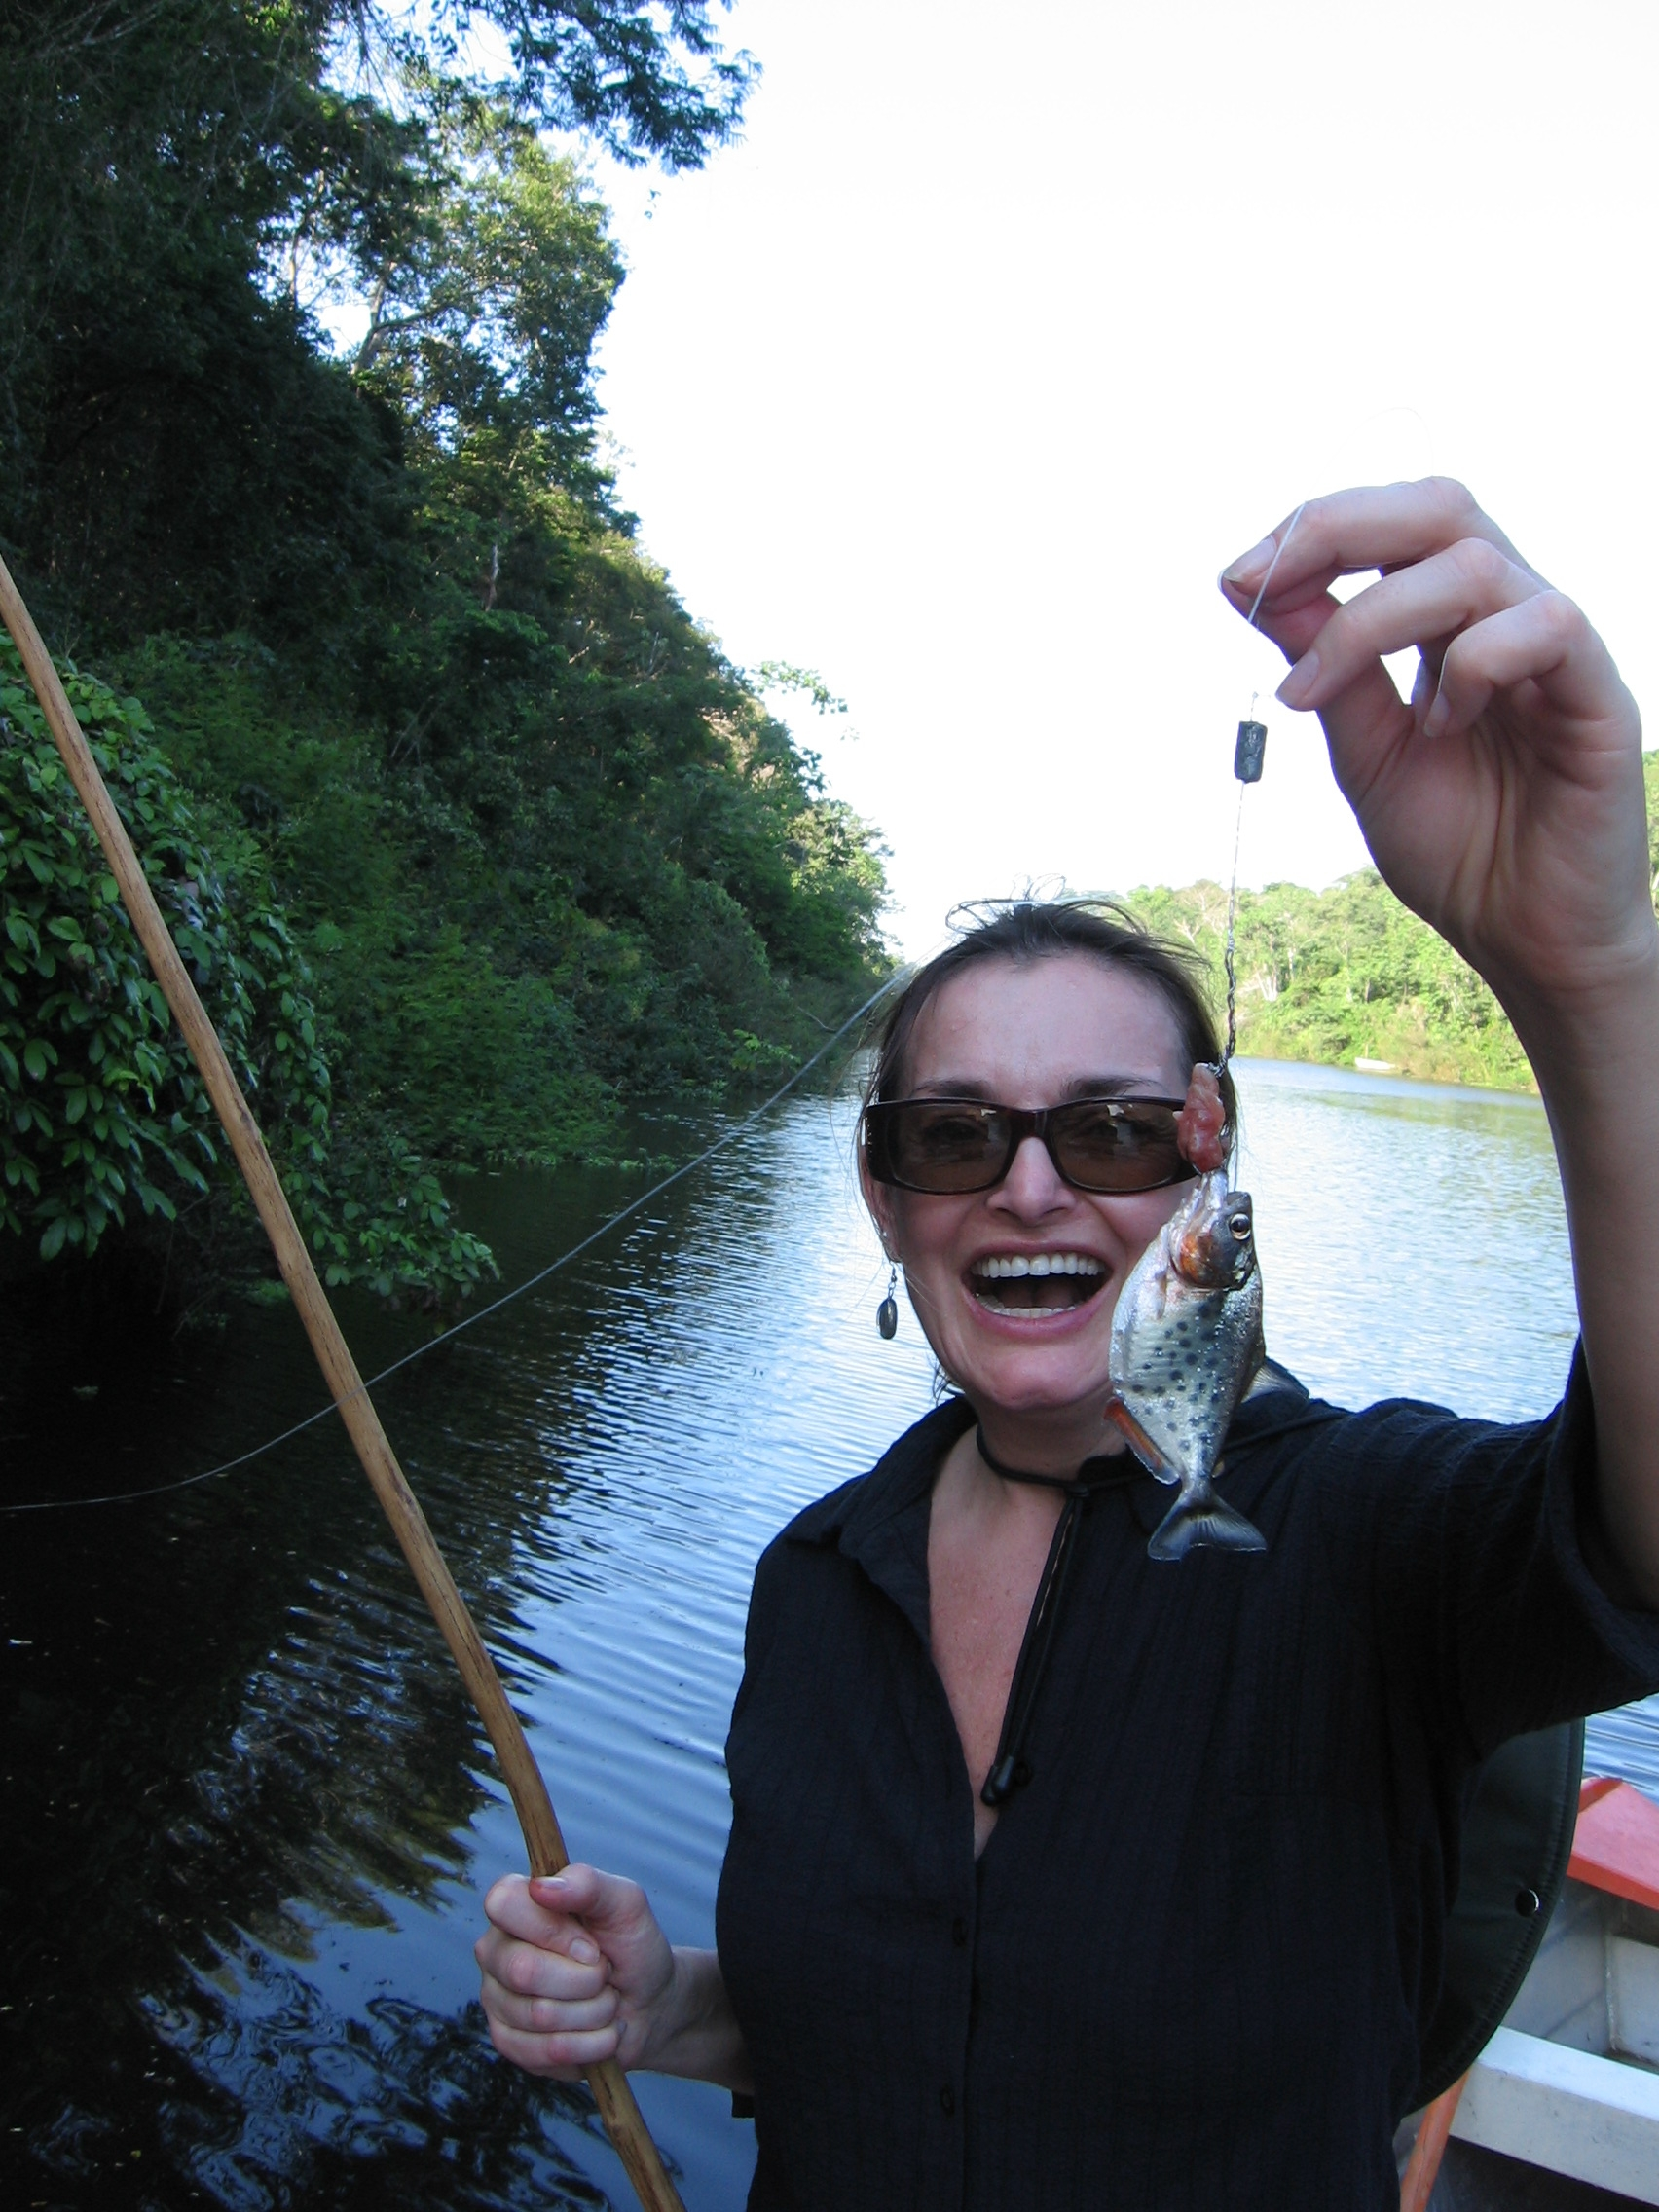 Chloe Hughes catching piranha in the Amazon River, Peru, 2008.